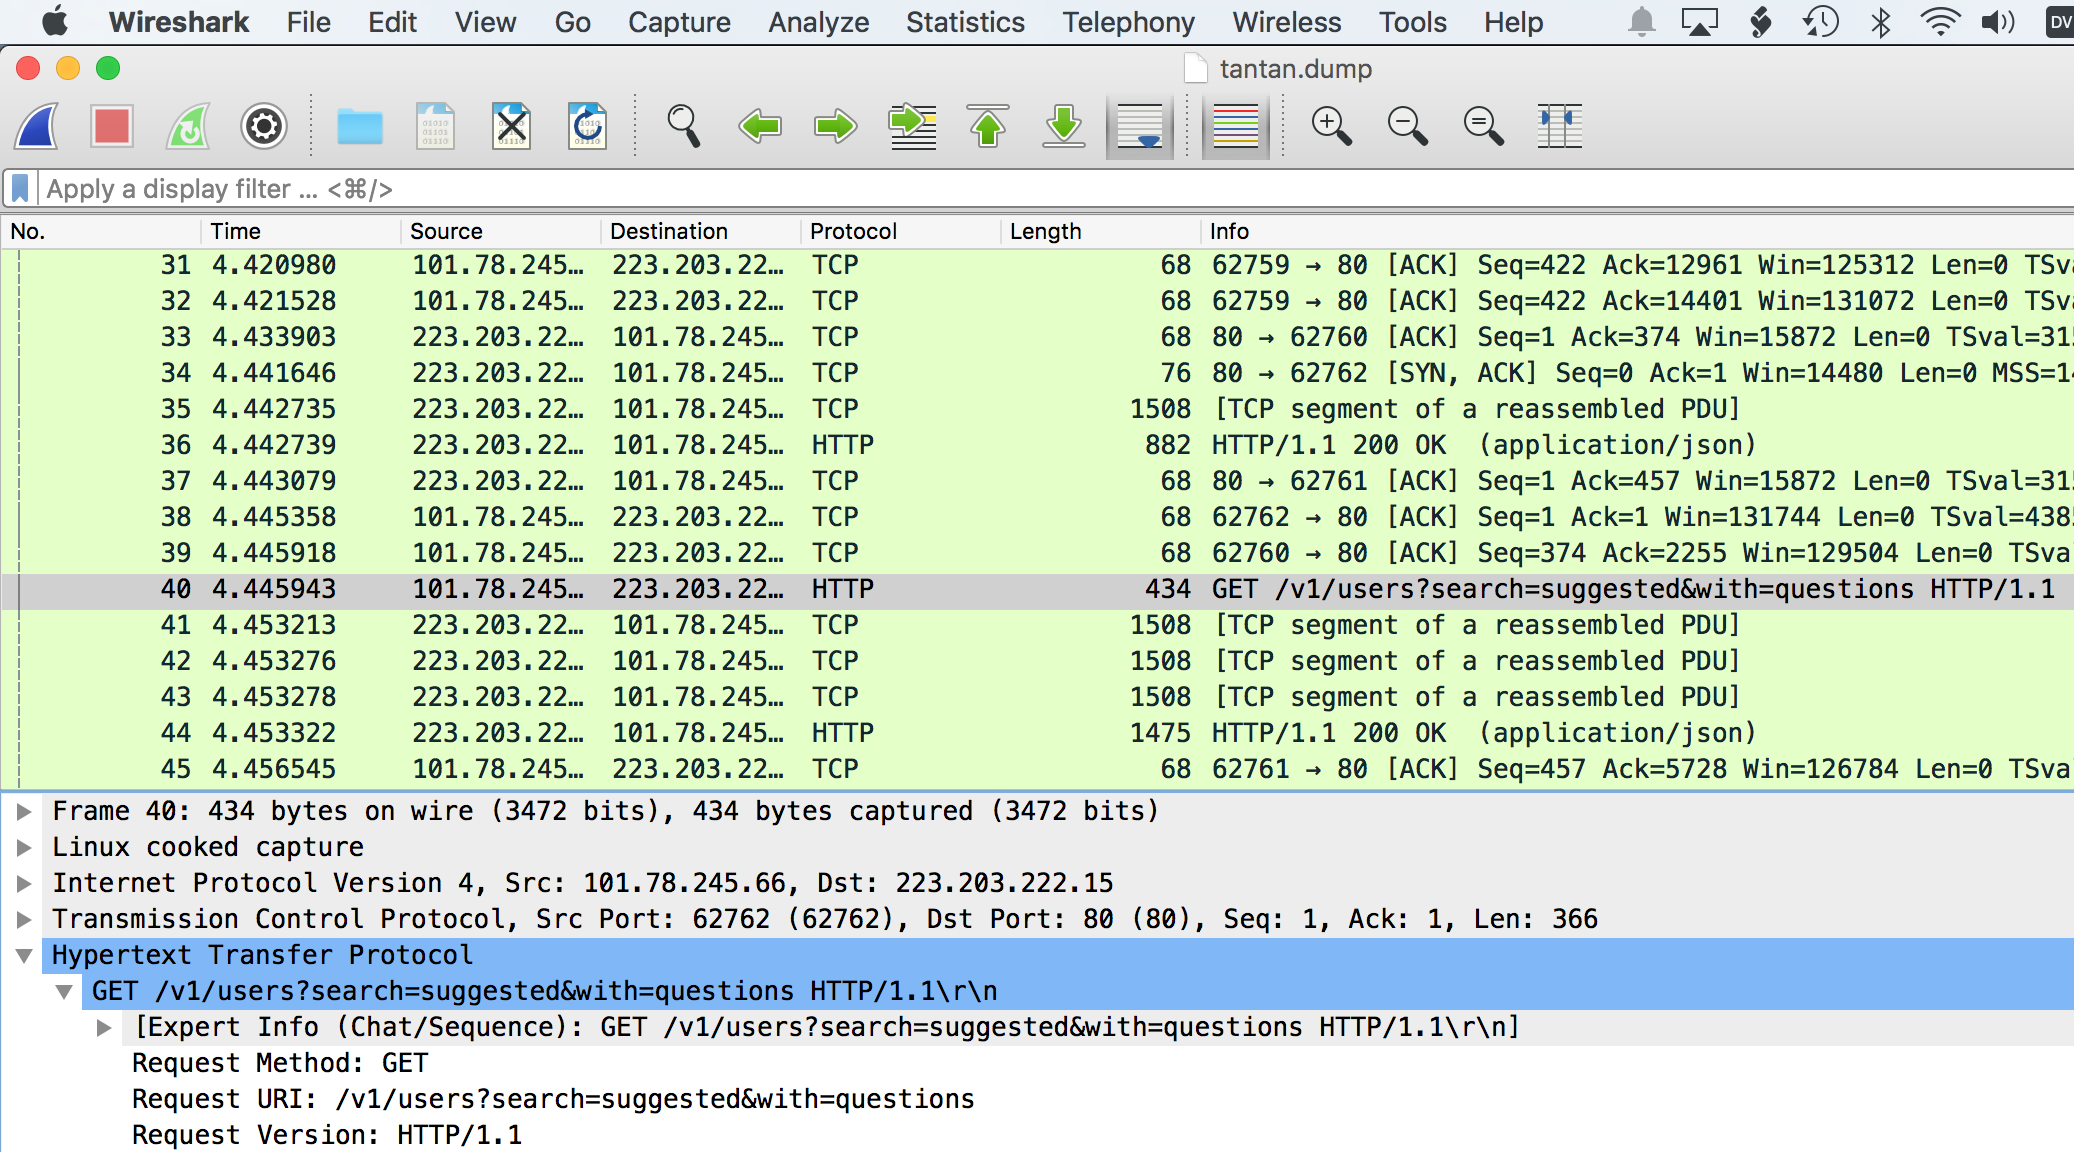 Wireshark analysis